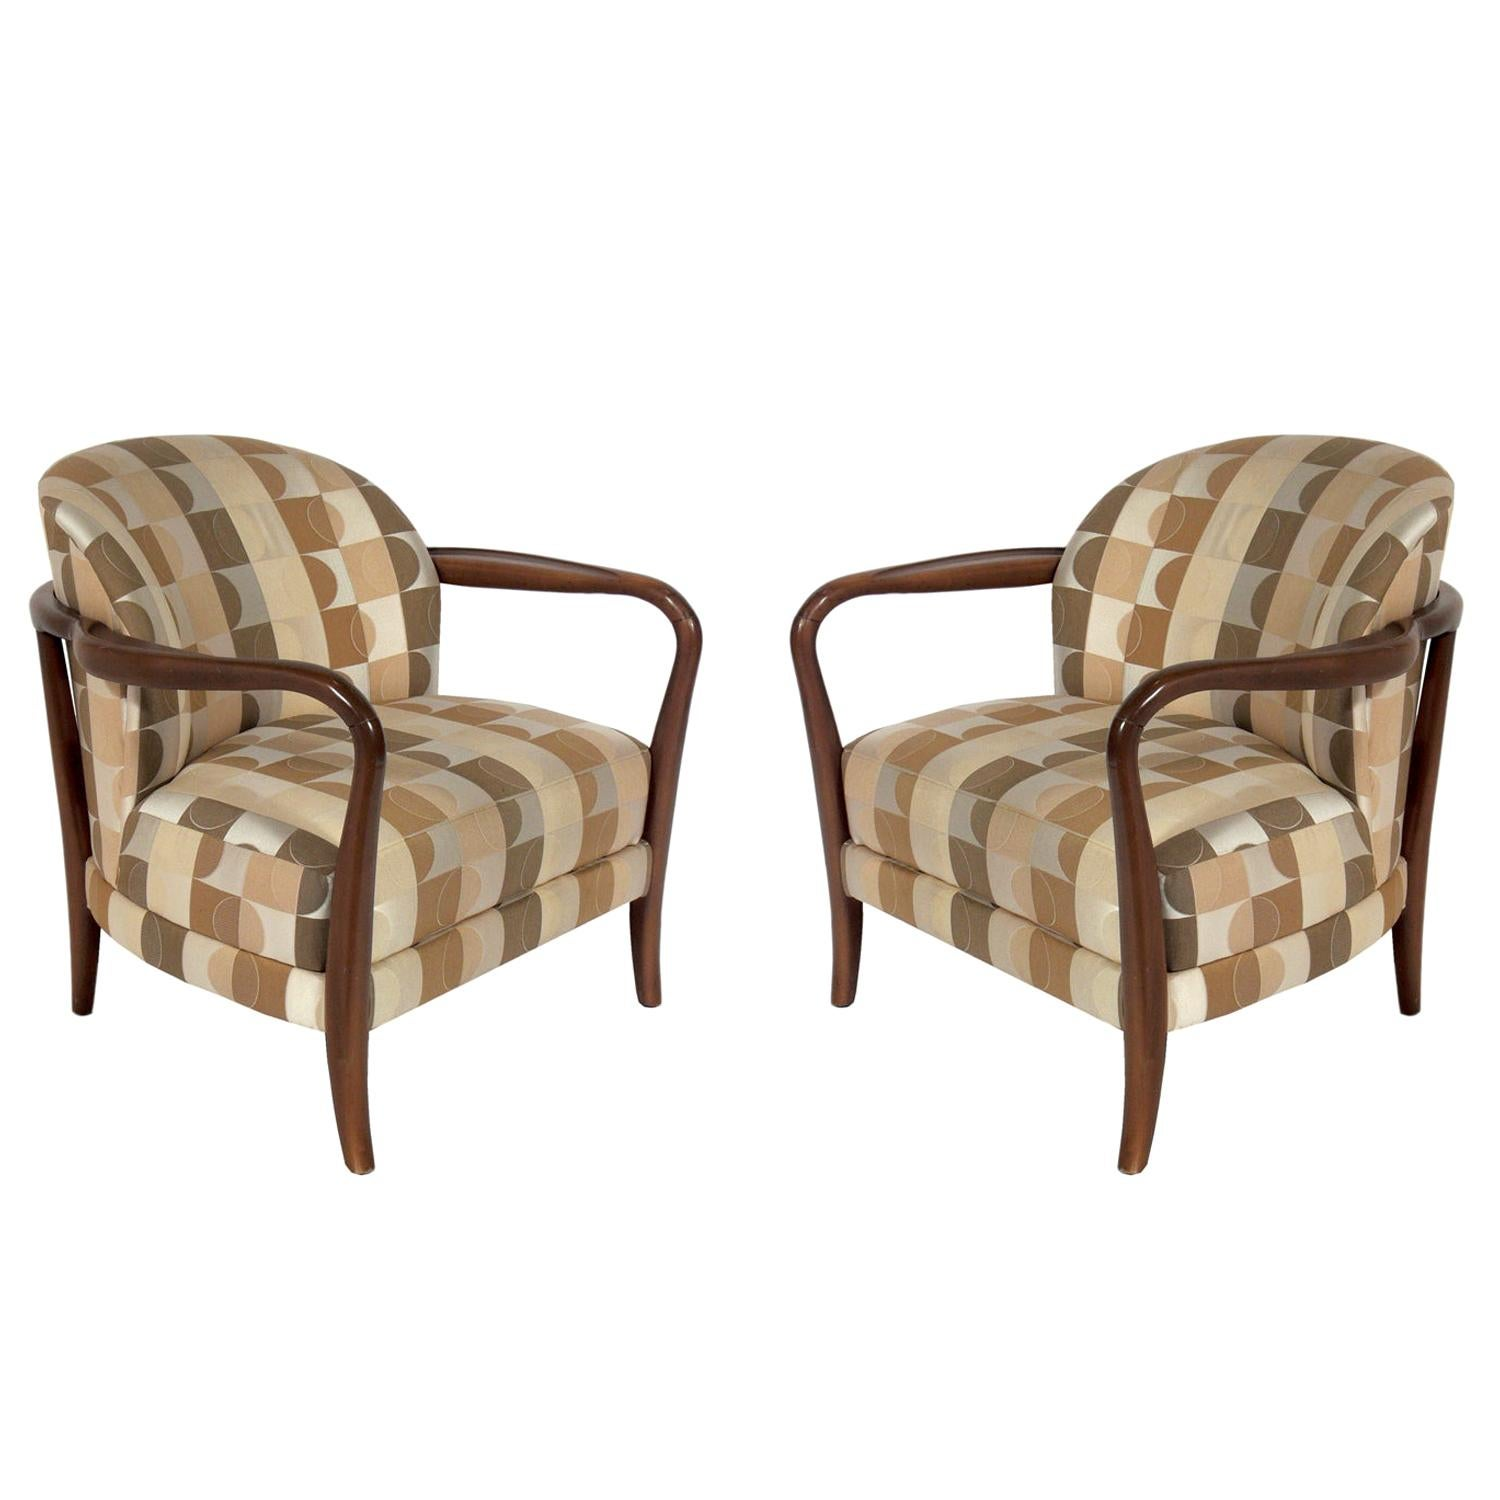 Curvaceous Pair of Lounge Chairs